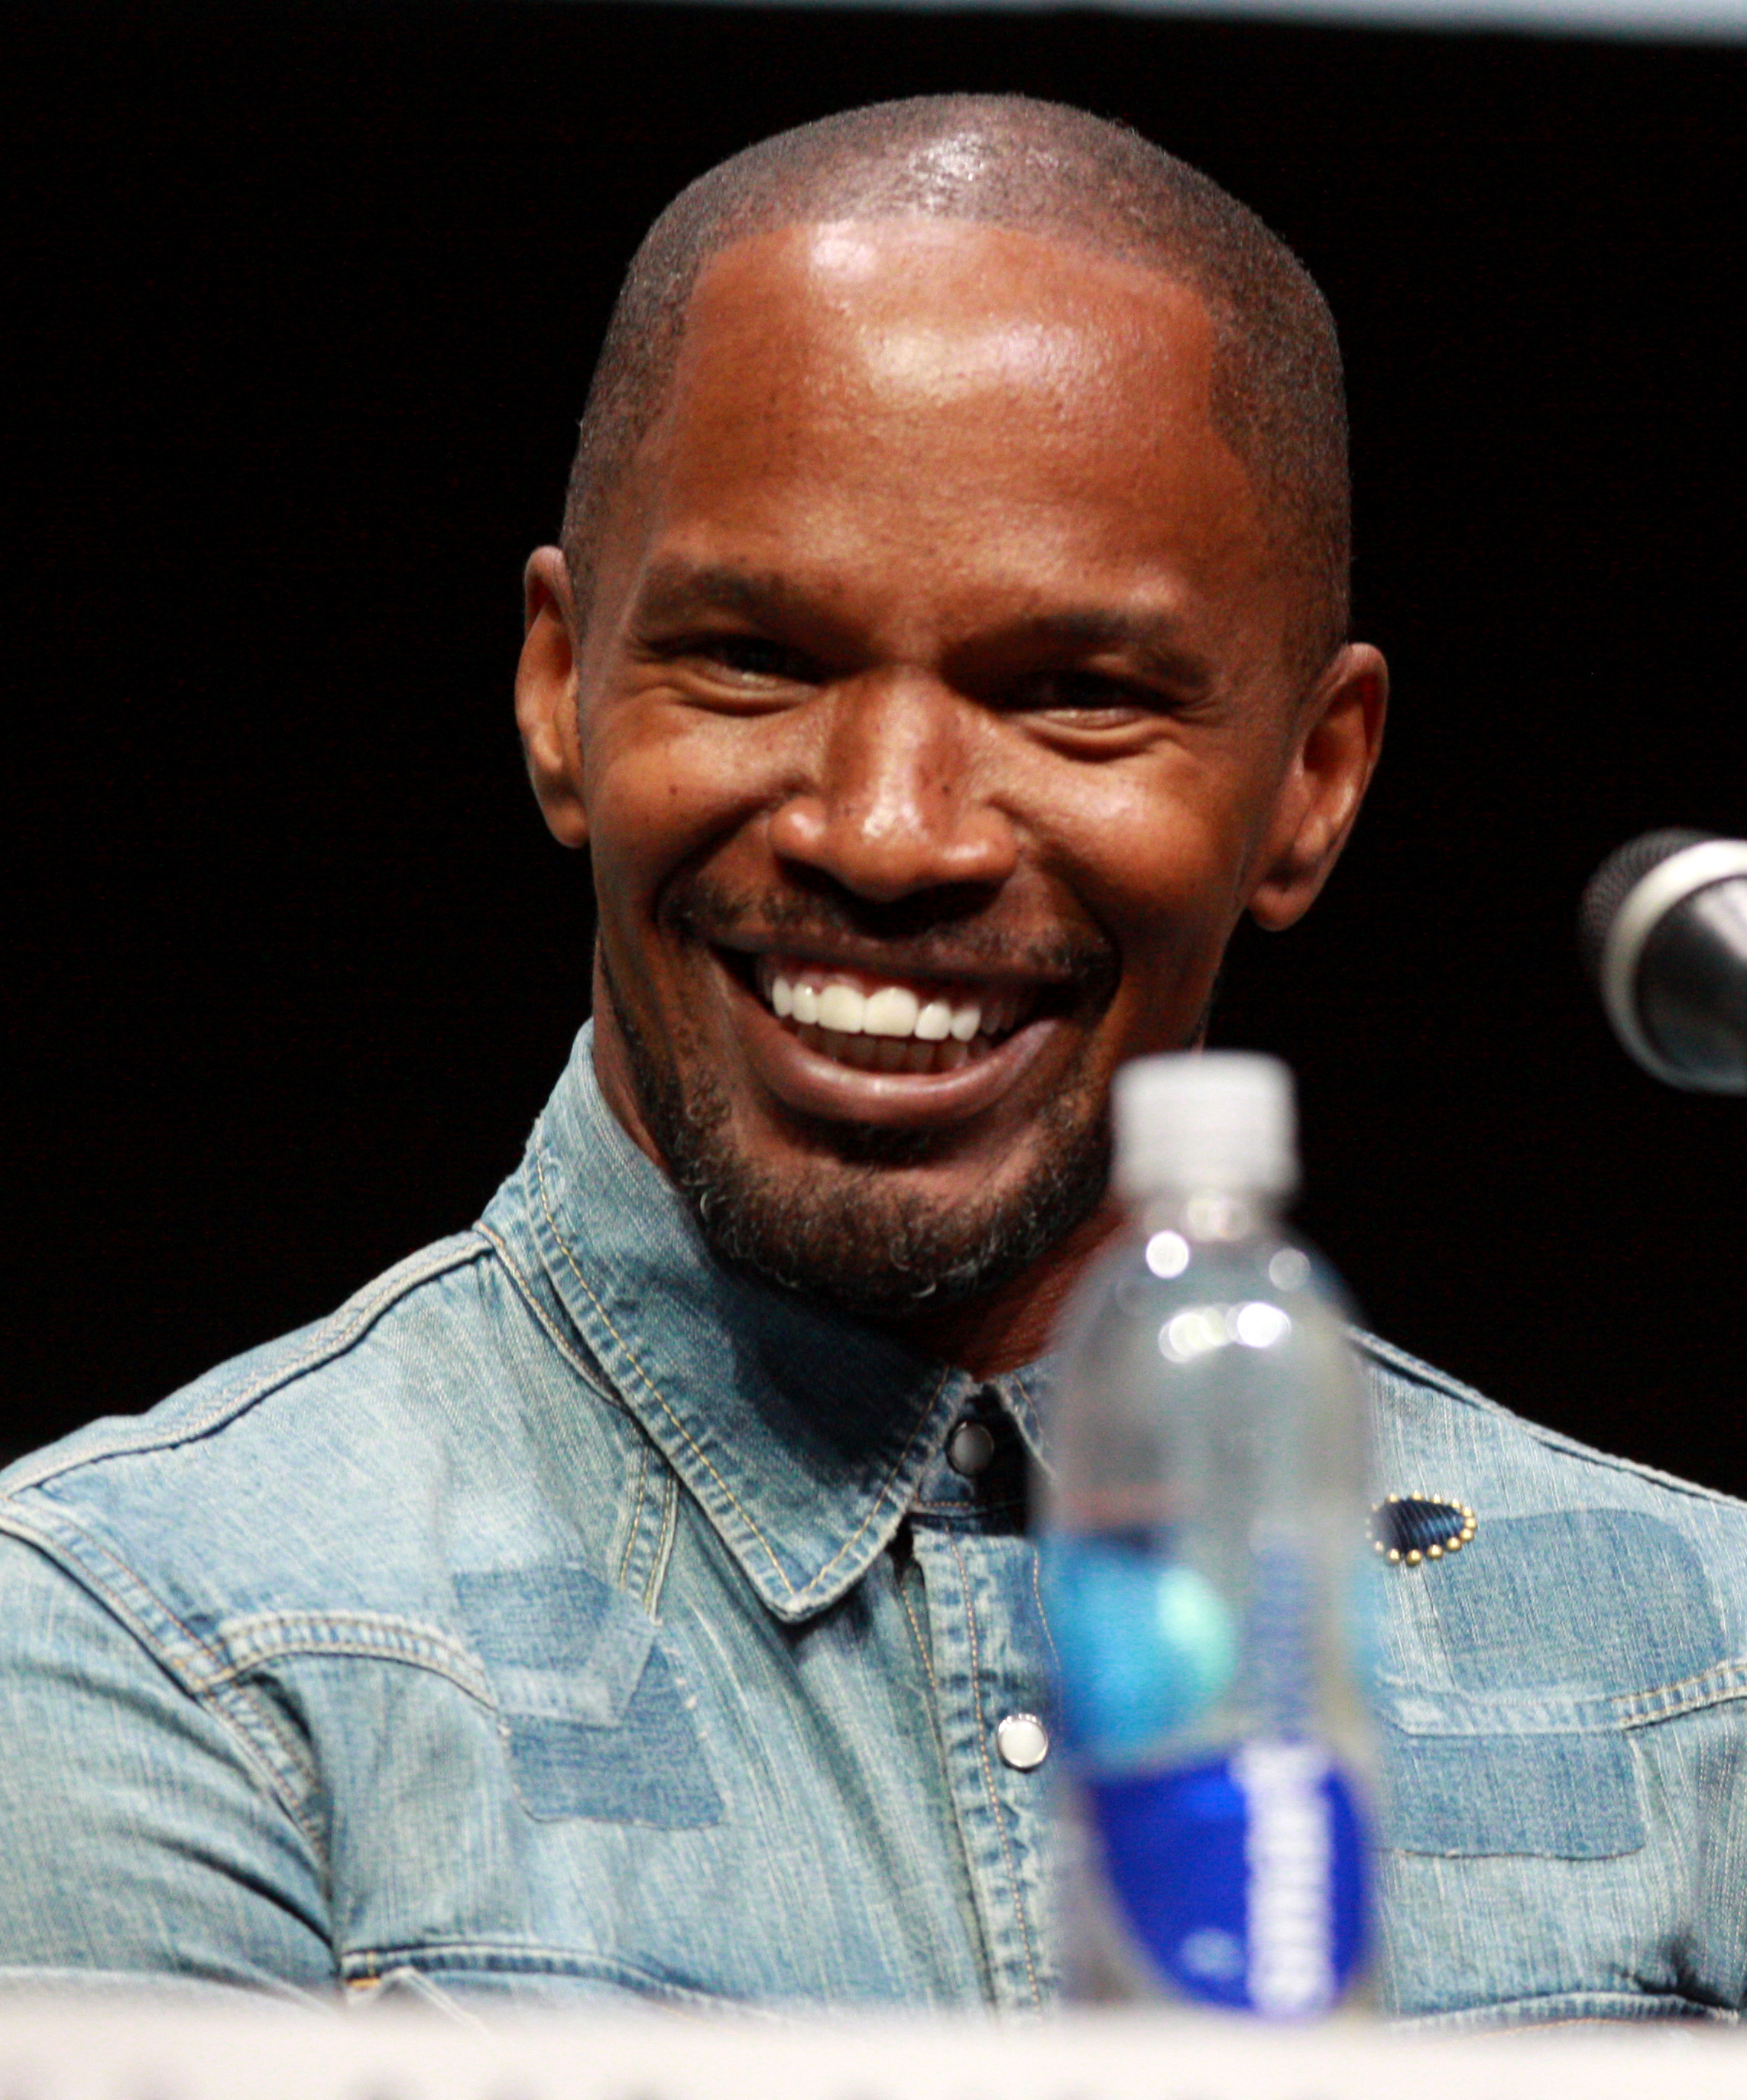 The 50-year old son of father Shaheed Abdulah and mother Louise Annette Dixon Jamie Foxx in 2018 photo. Jamie Foxx earned a  million dollar salary - leaving the net worth at 85 million in 2018